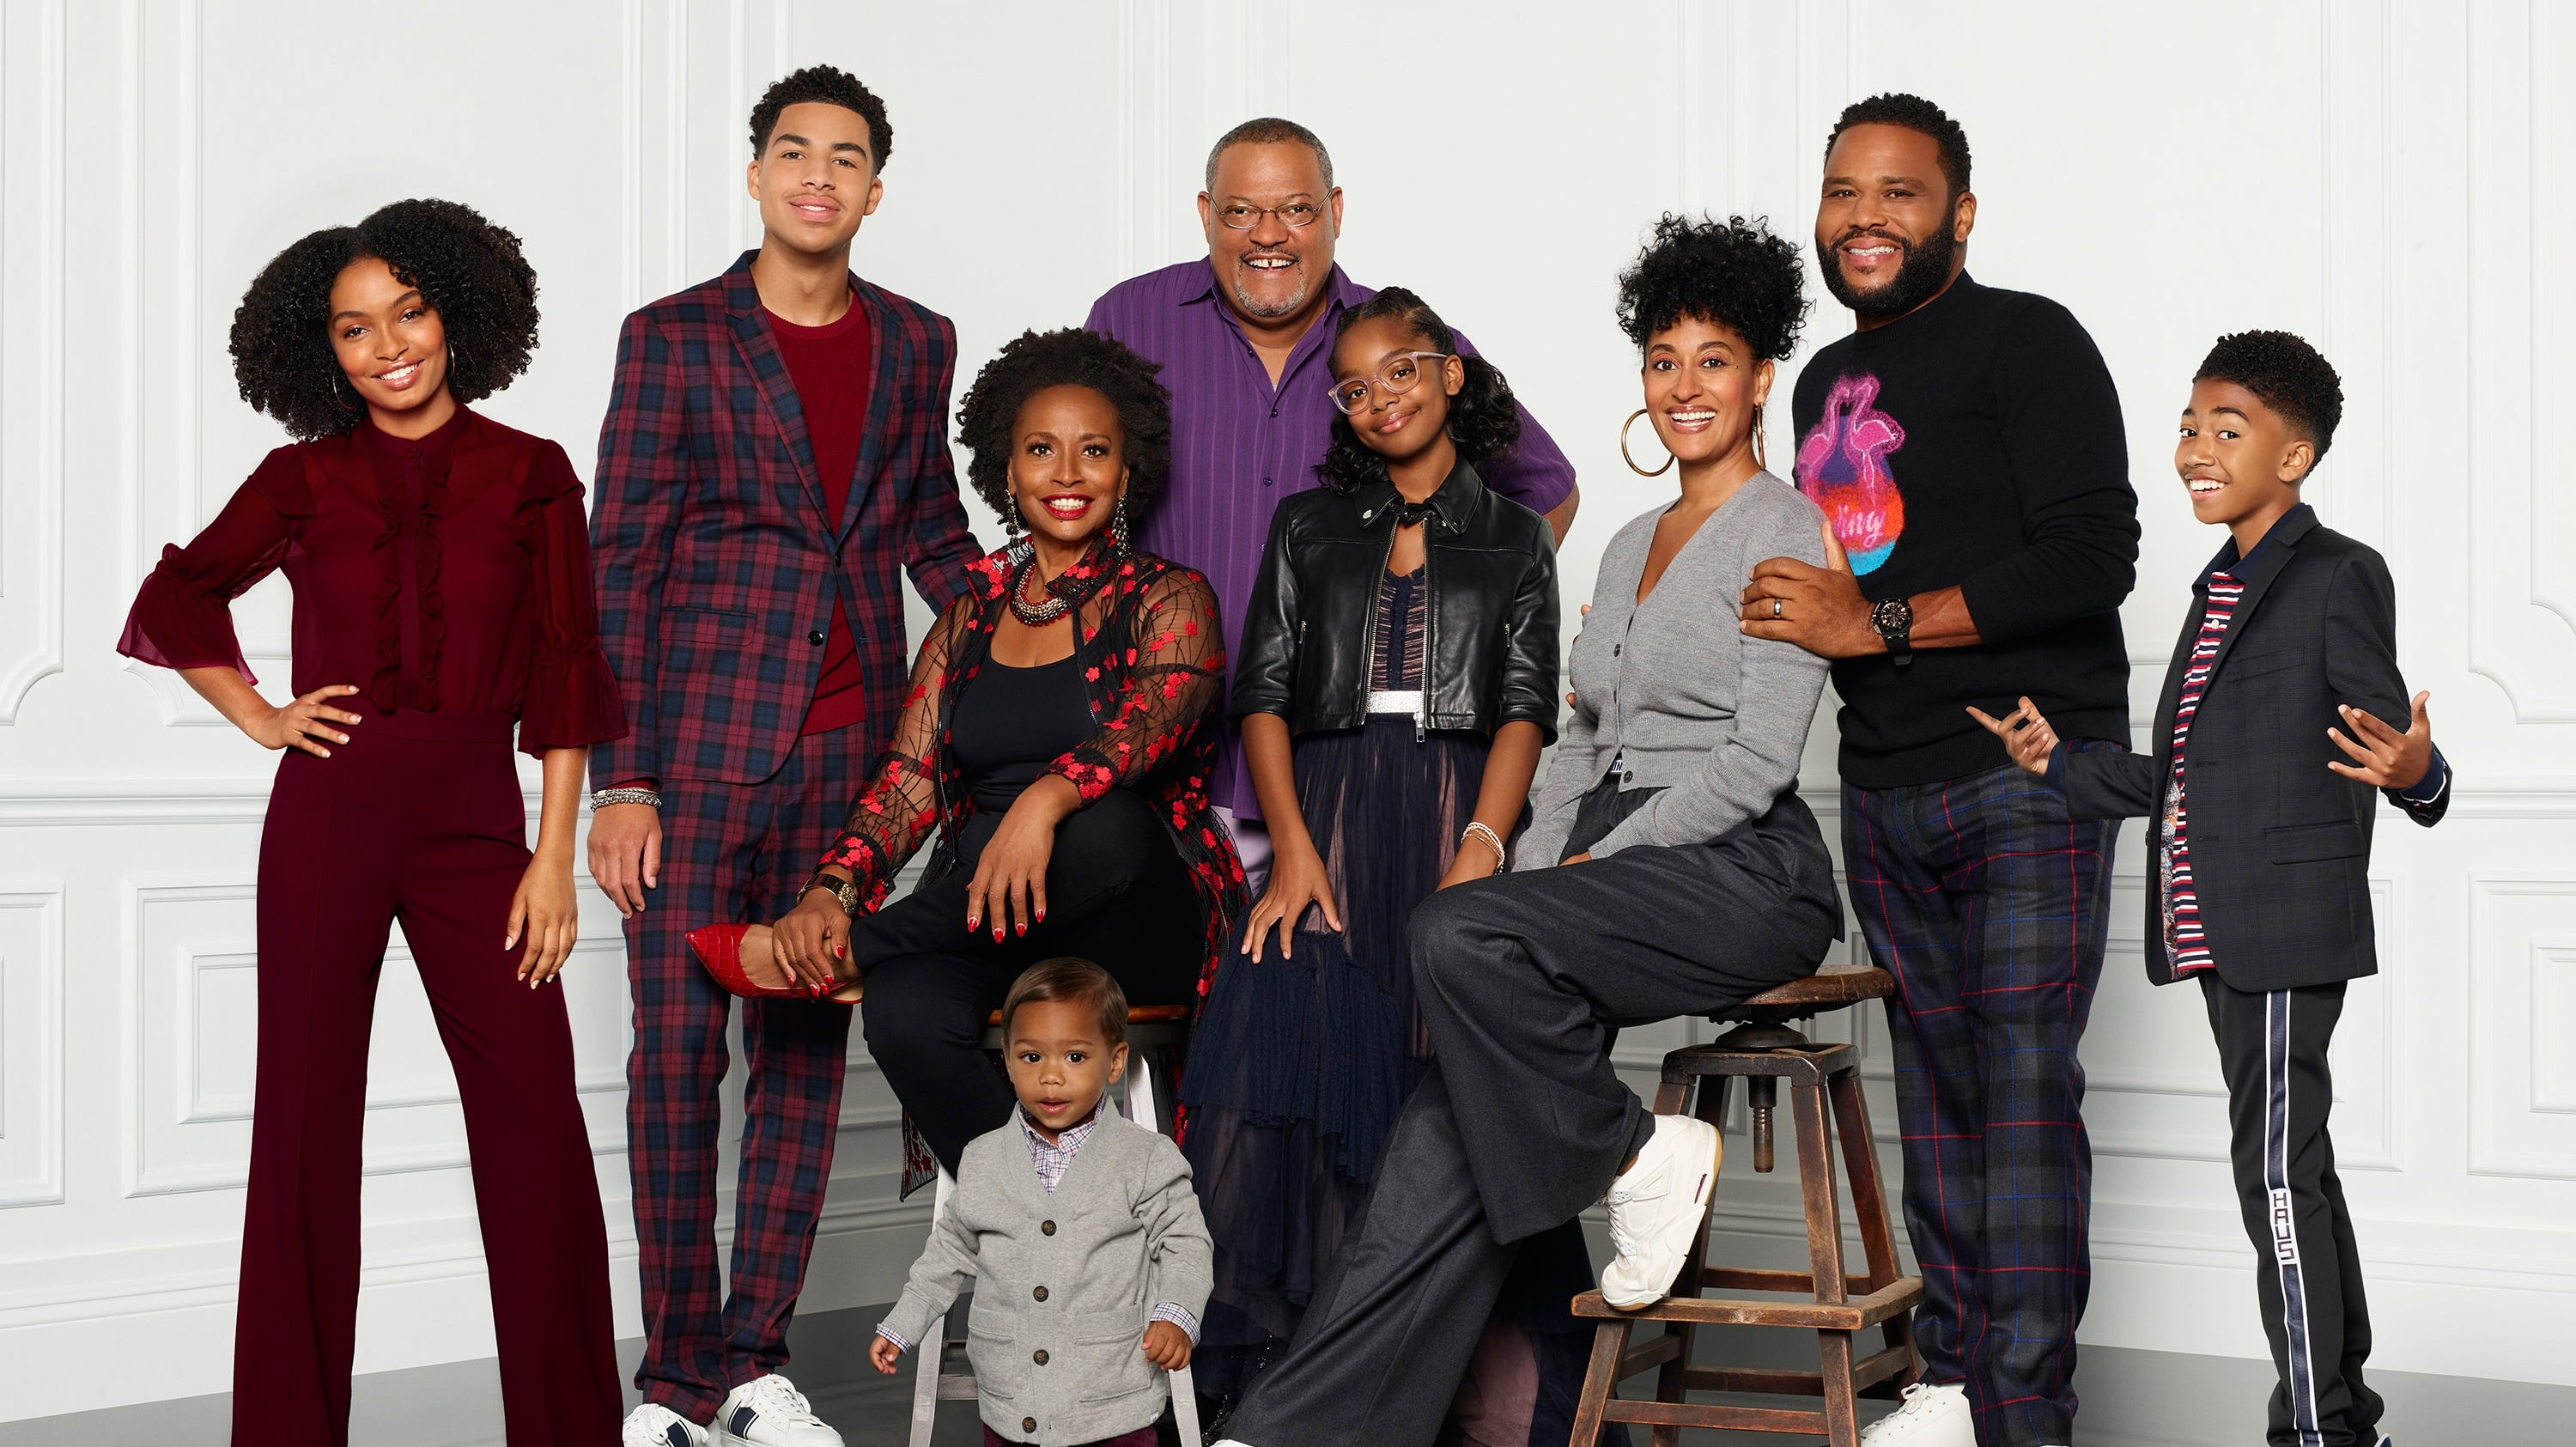 ABC orders new episodes Black-ish